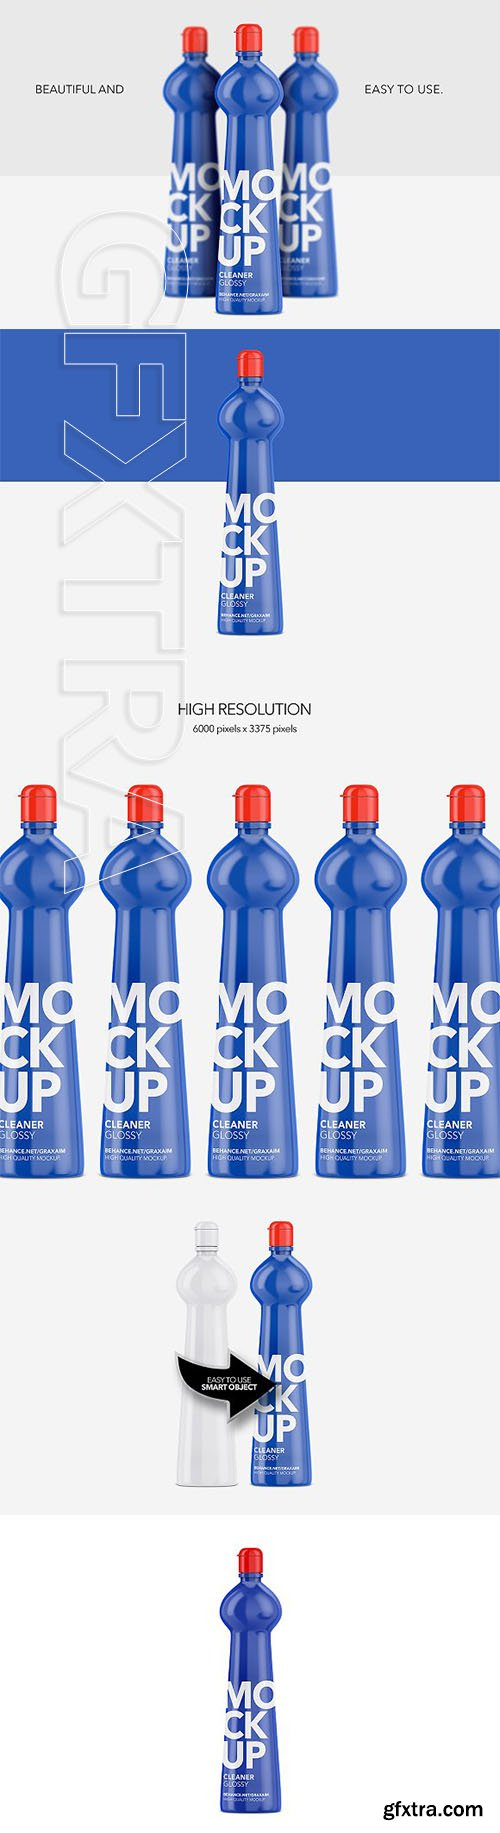 CreativeMarket - Cleaner Bottle - Glossy - Front View 2980889